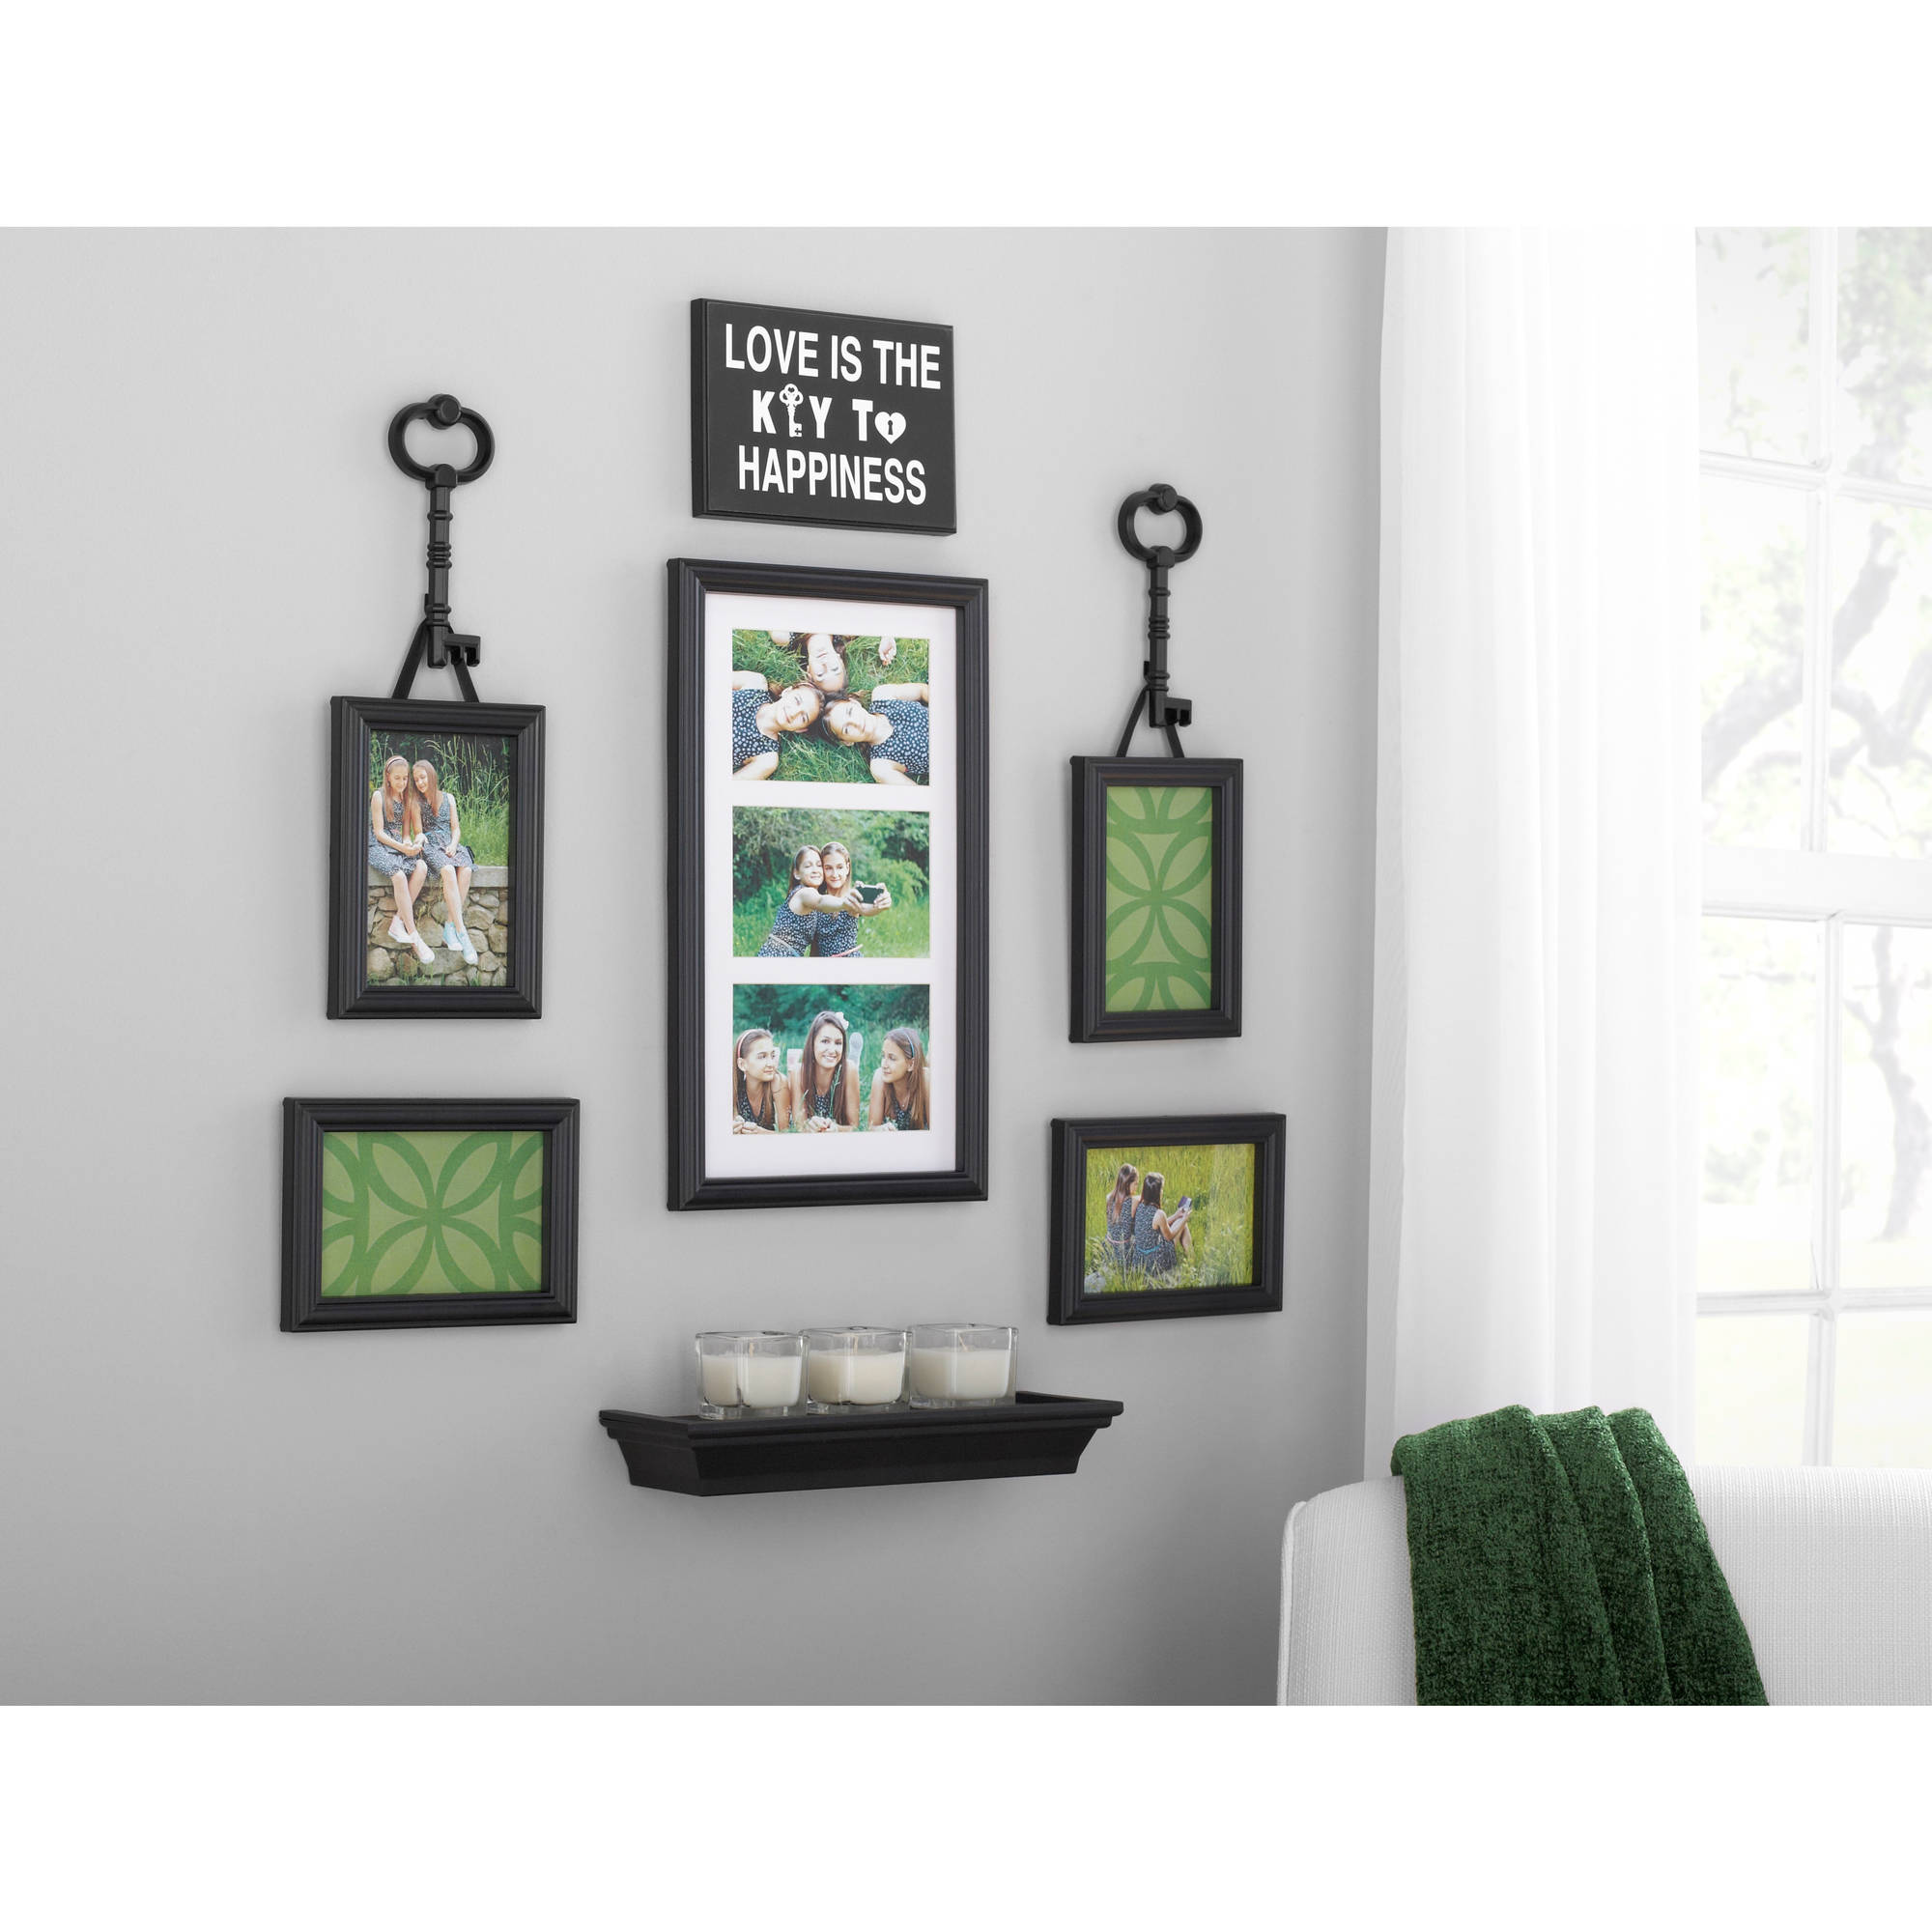 Mainstays 9-Piece Key Expression Wall Frame Set by Always Home International